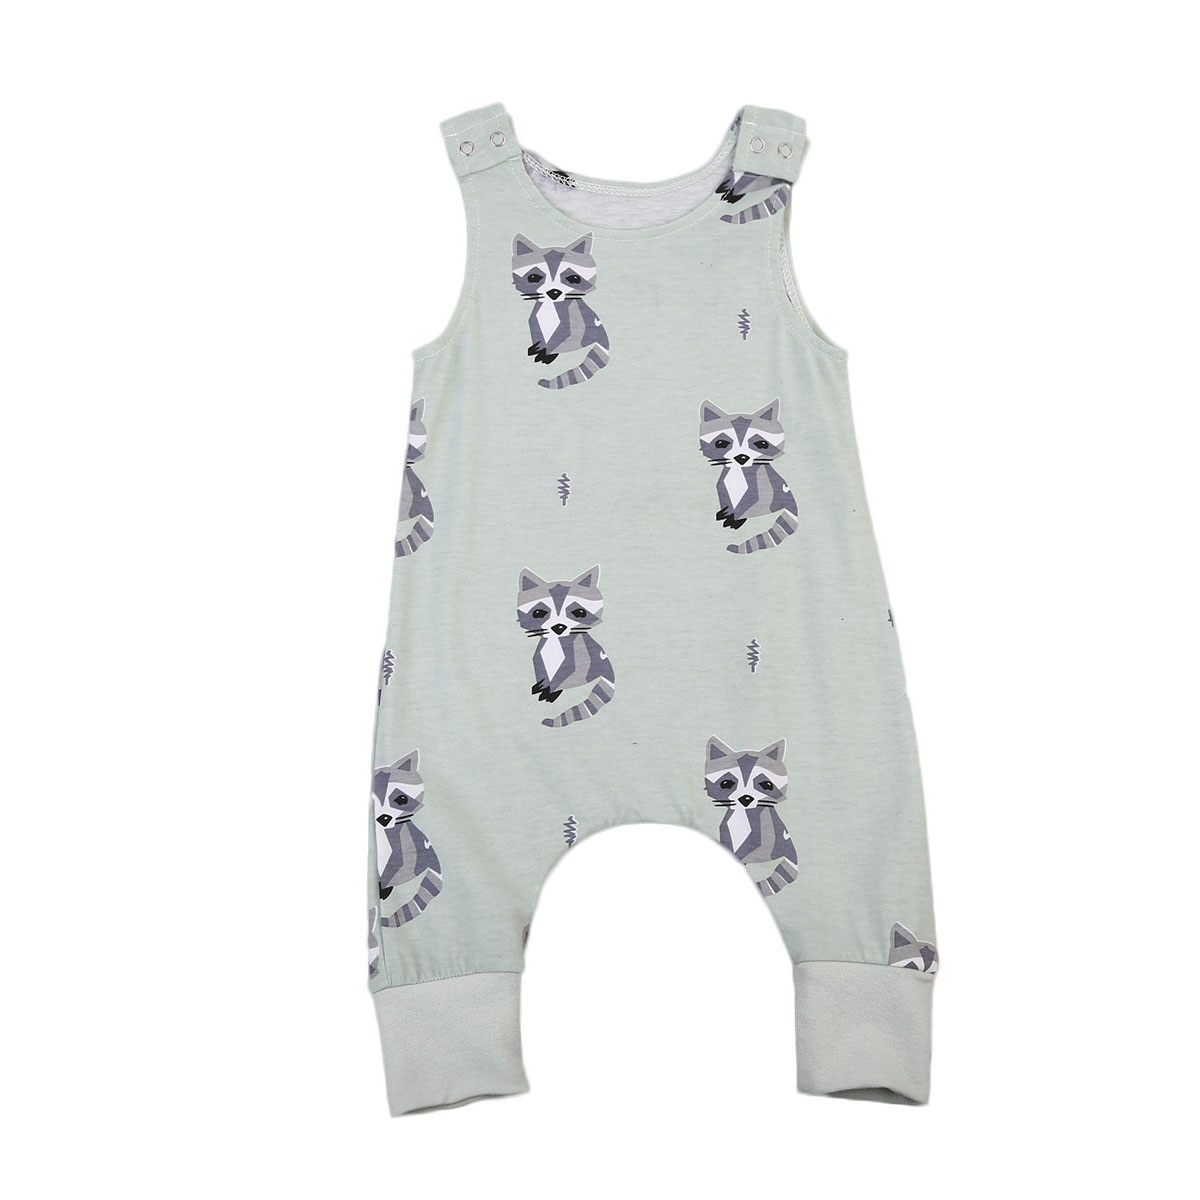 Pudcoco Cute Newborn Baby Boys Girls Racoon Romper Summer Sleeveless Clothes Jumpsuit Outfits Clothing pudcoco newborn baby girl clothes 2017 summer sleeveless floral romper backless jumpsuit sunsuit children clothes